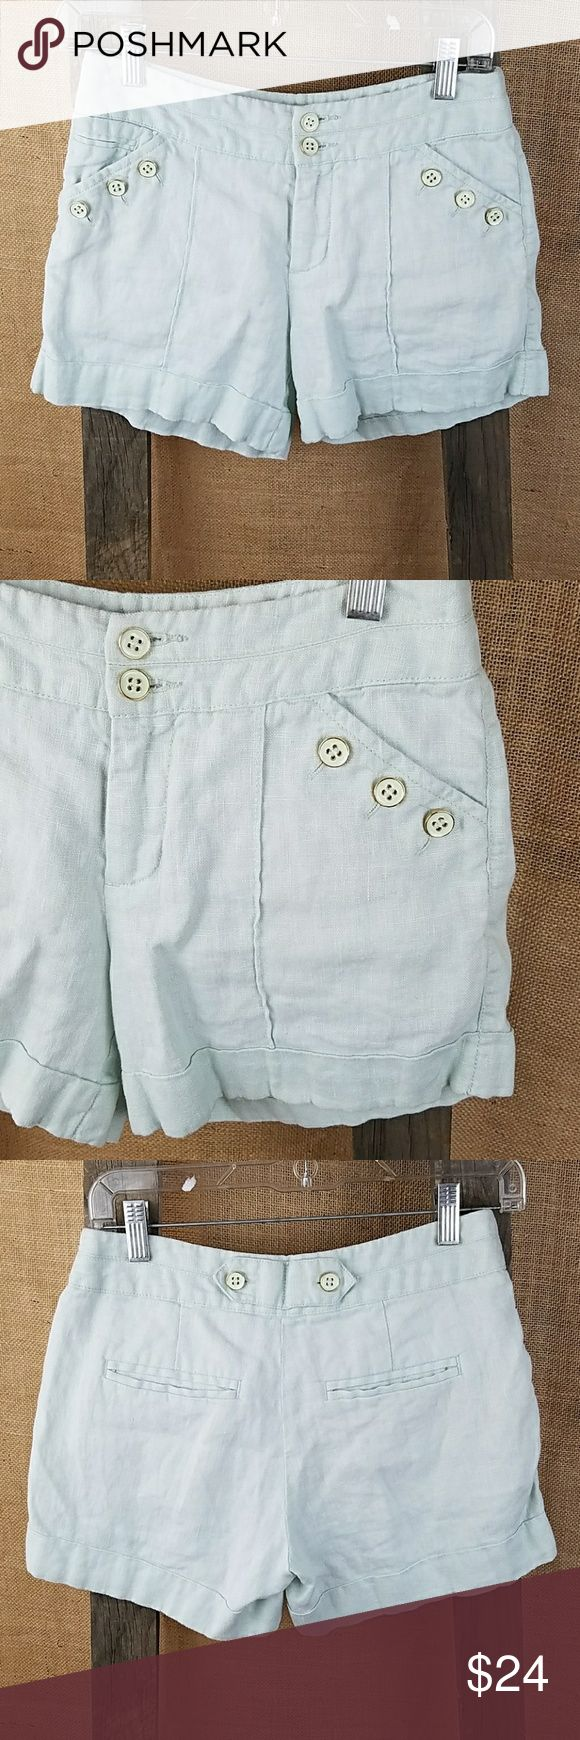 "Cidra Anthropologie womens 0 shorts pale mint gold Cidra Anthropologie womens 0 shorts pale mint gold ascent buttons clubware linen.  Waist side to side: 14"" Length: 12"" Rise: 9"" Anthropologie Shorts"